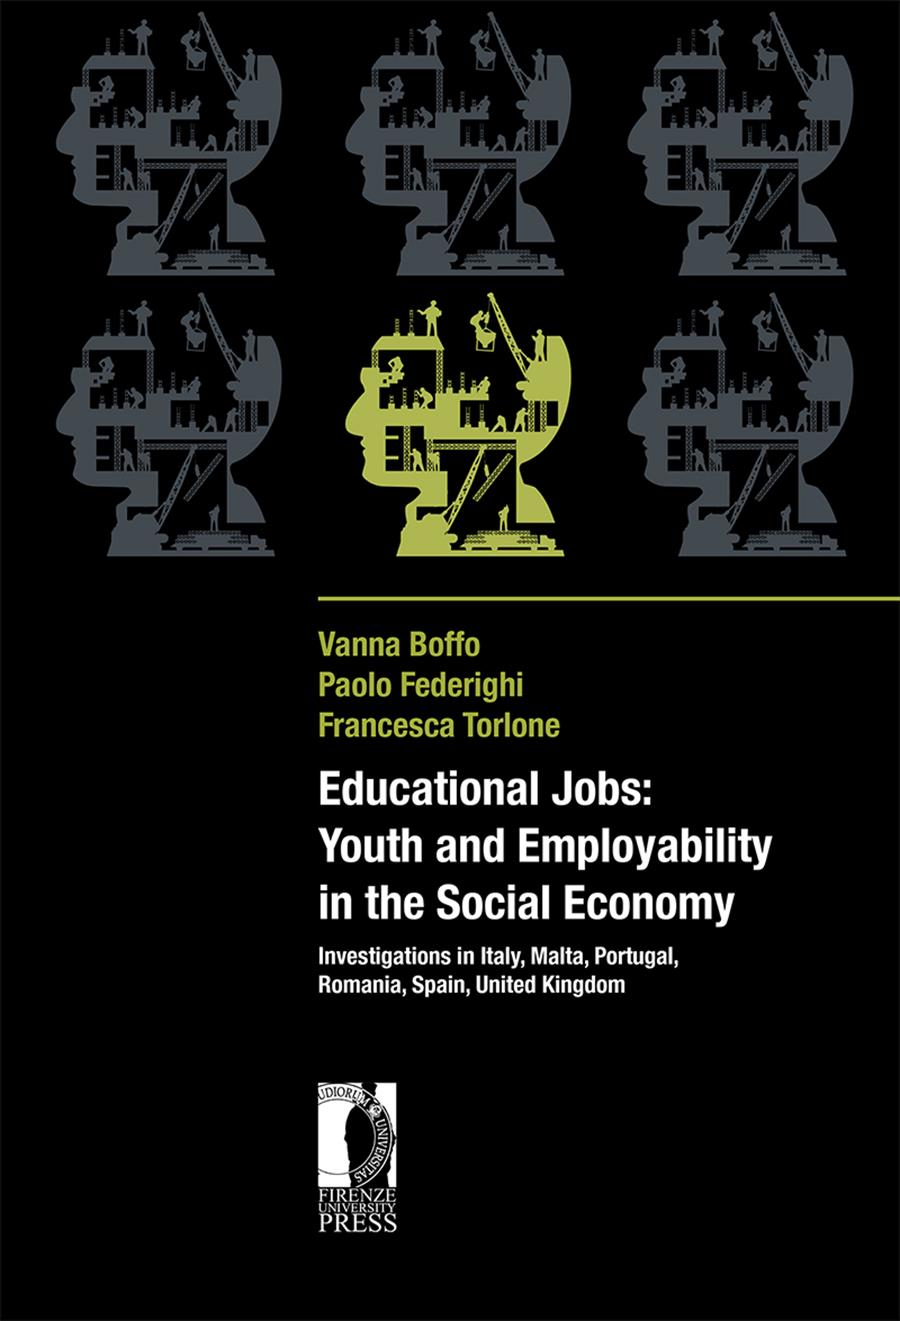 Educational Jobs: Youth and Employability in the Social Economy